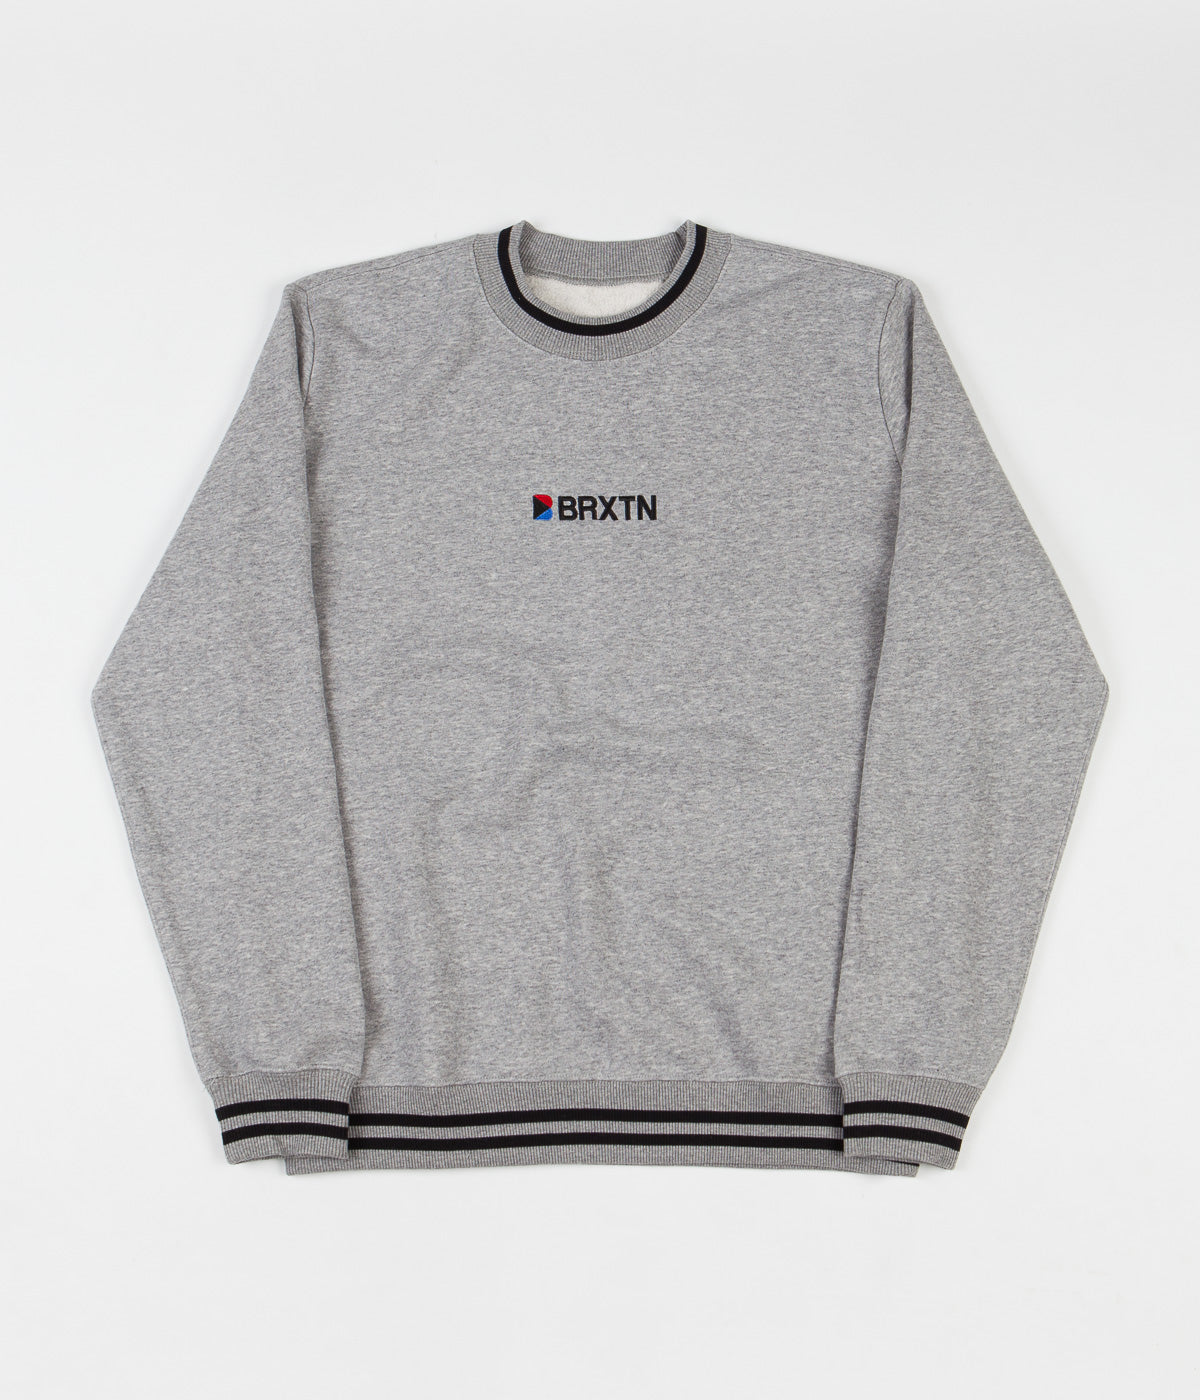 Brixton Stowell IV International Crewneck Sweatshirt - Heather Grey